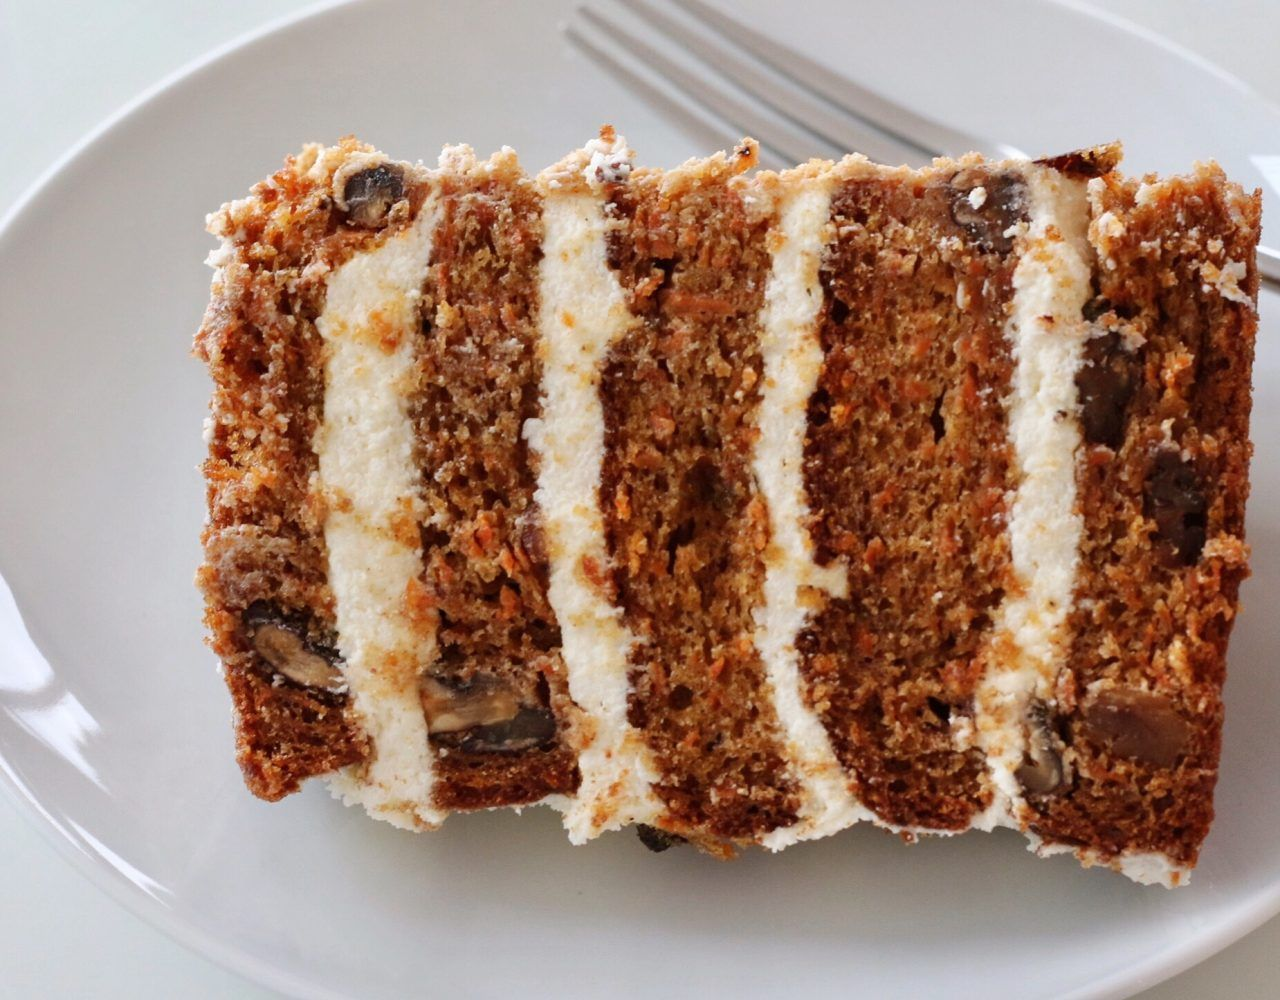 Carrot cake with cream cheese frosting creative home cooking with carrot cake with cream cheese frosting creative home cooking with theresa visintin cooking simple delicious and creative food easy recipes for the forumfinder Images